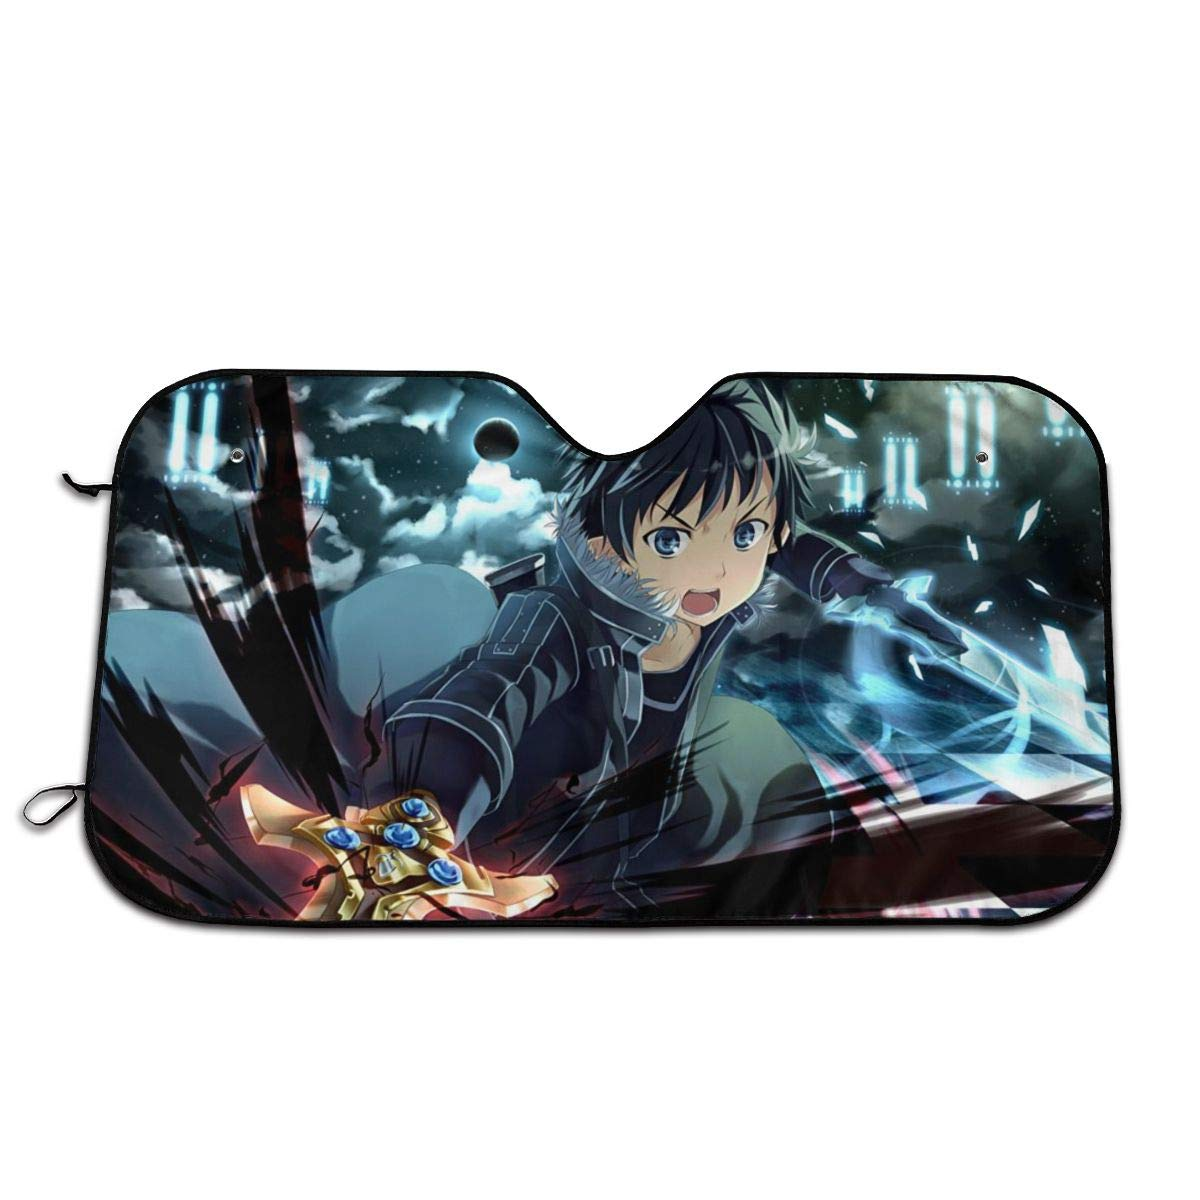 Hguftu5du Sword Art Online Universal Windshield Sunshade 27.5x51 Inch Car Sun Visor Seat Sunscreen by Hguftu5du